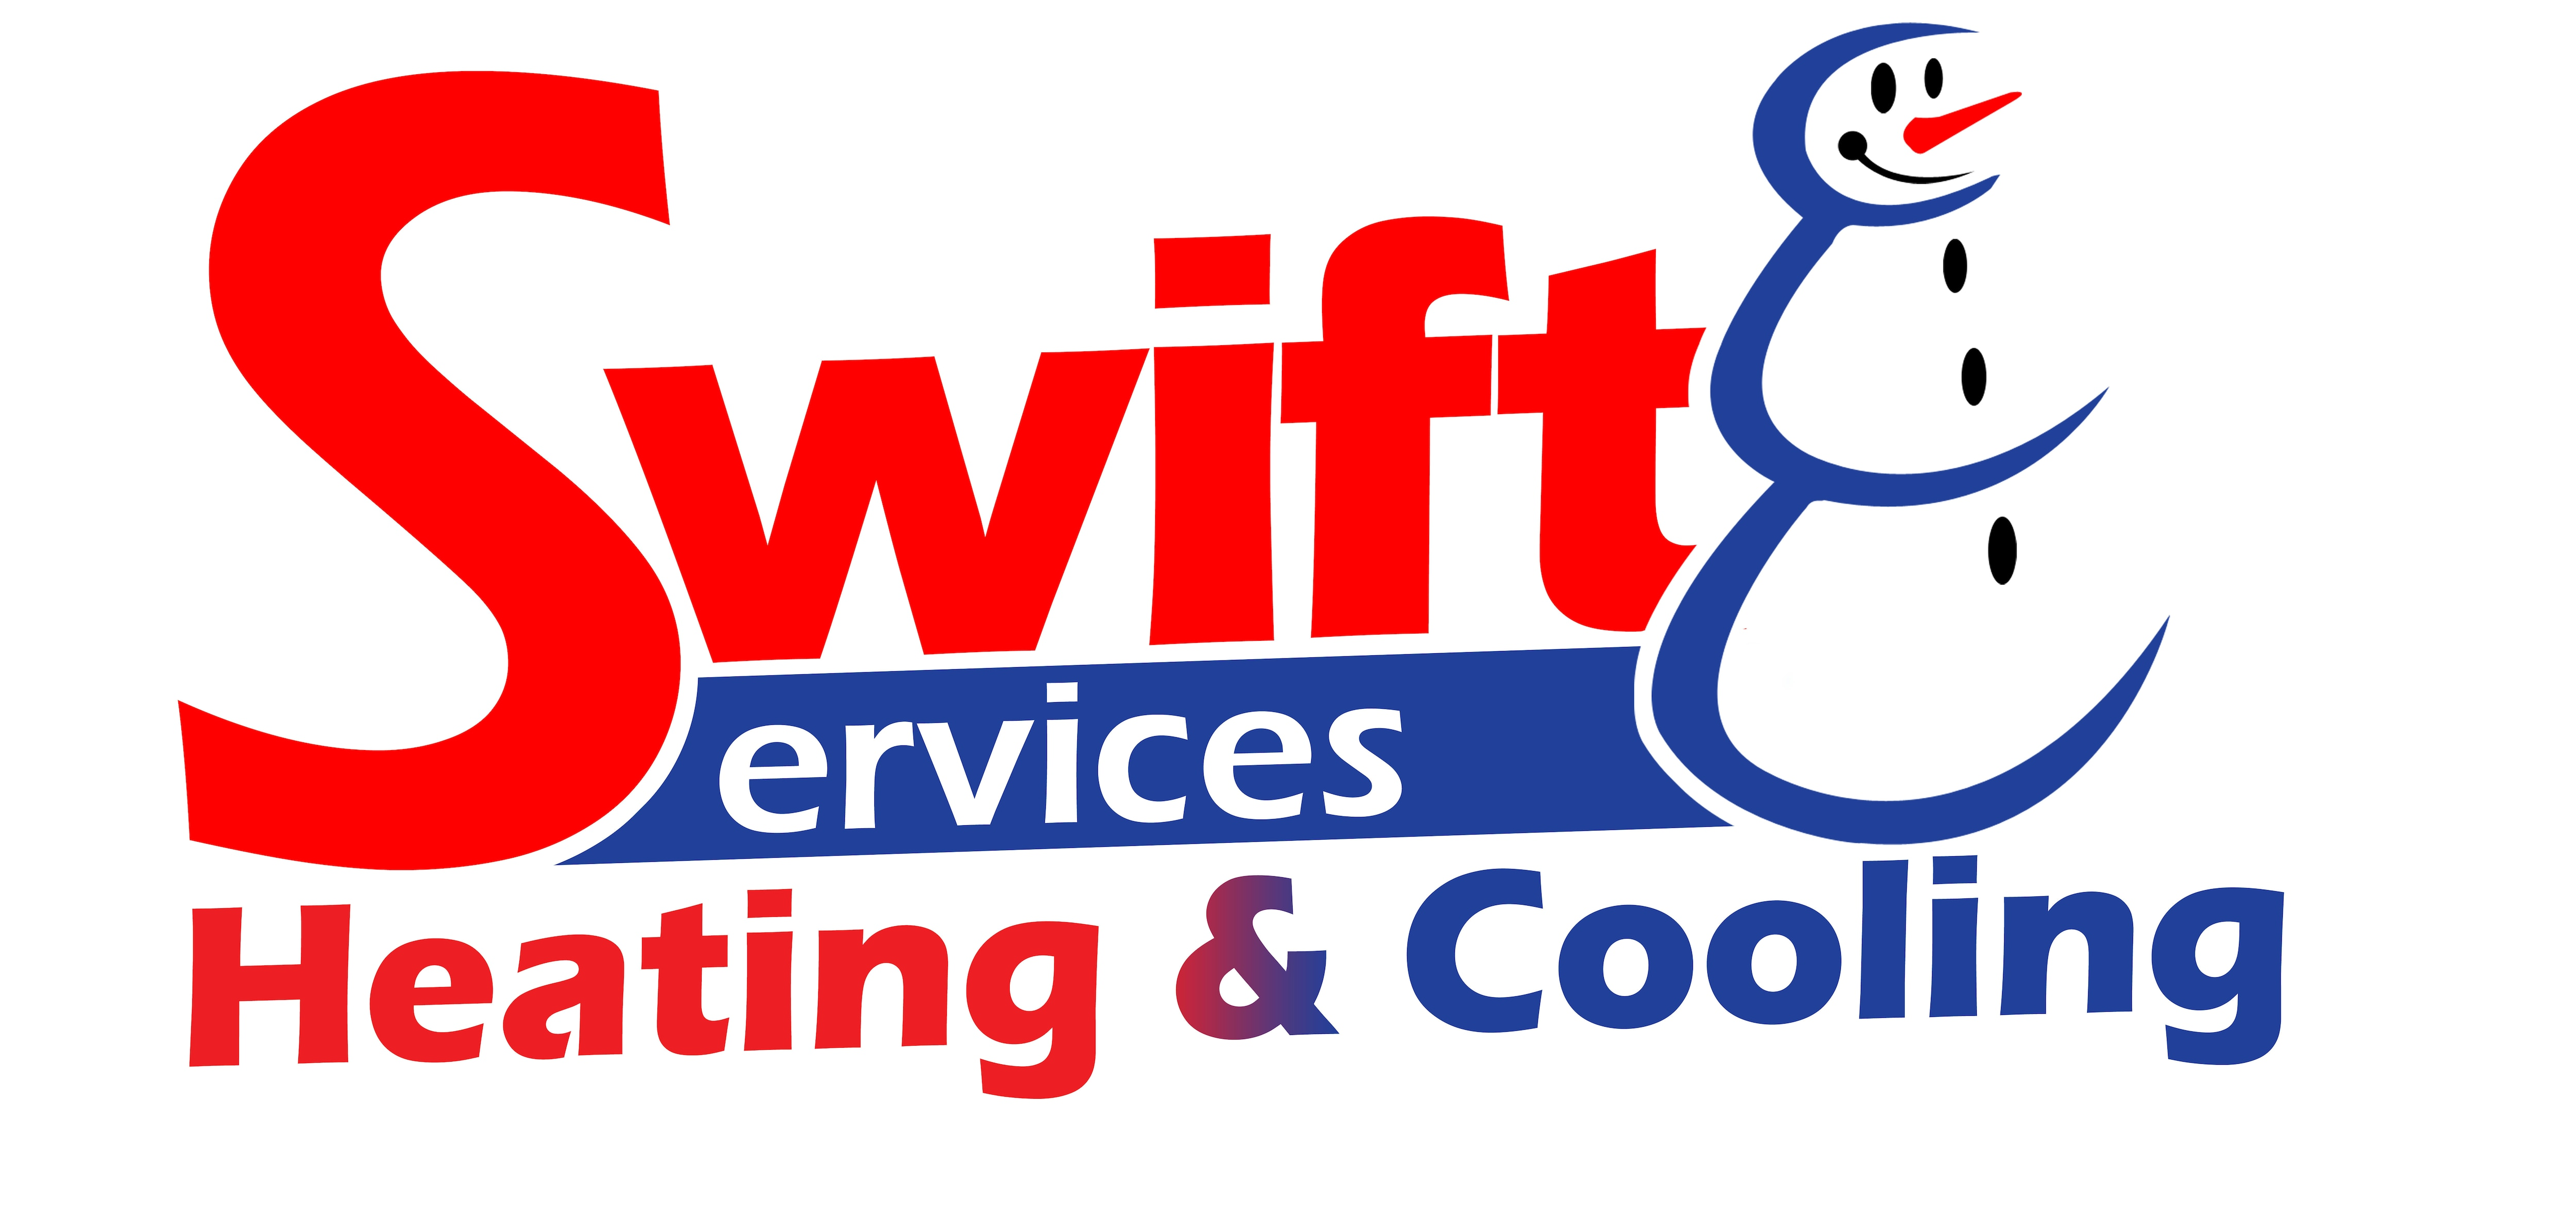 Swift Services Heating , Cooling & Electric  logo